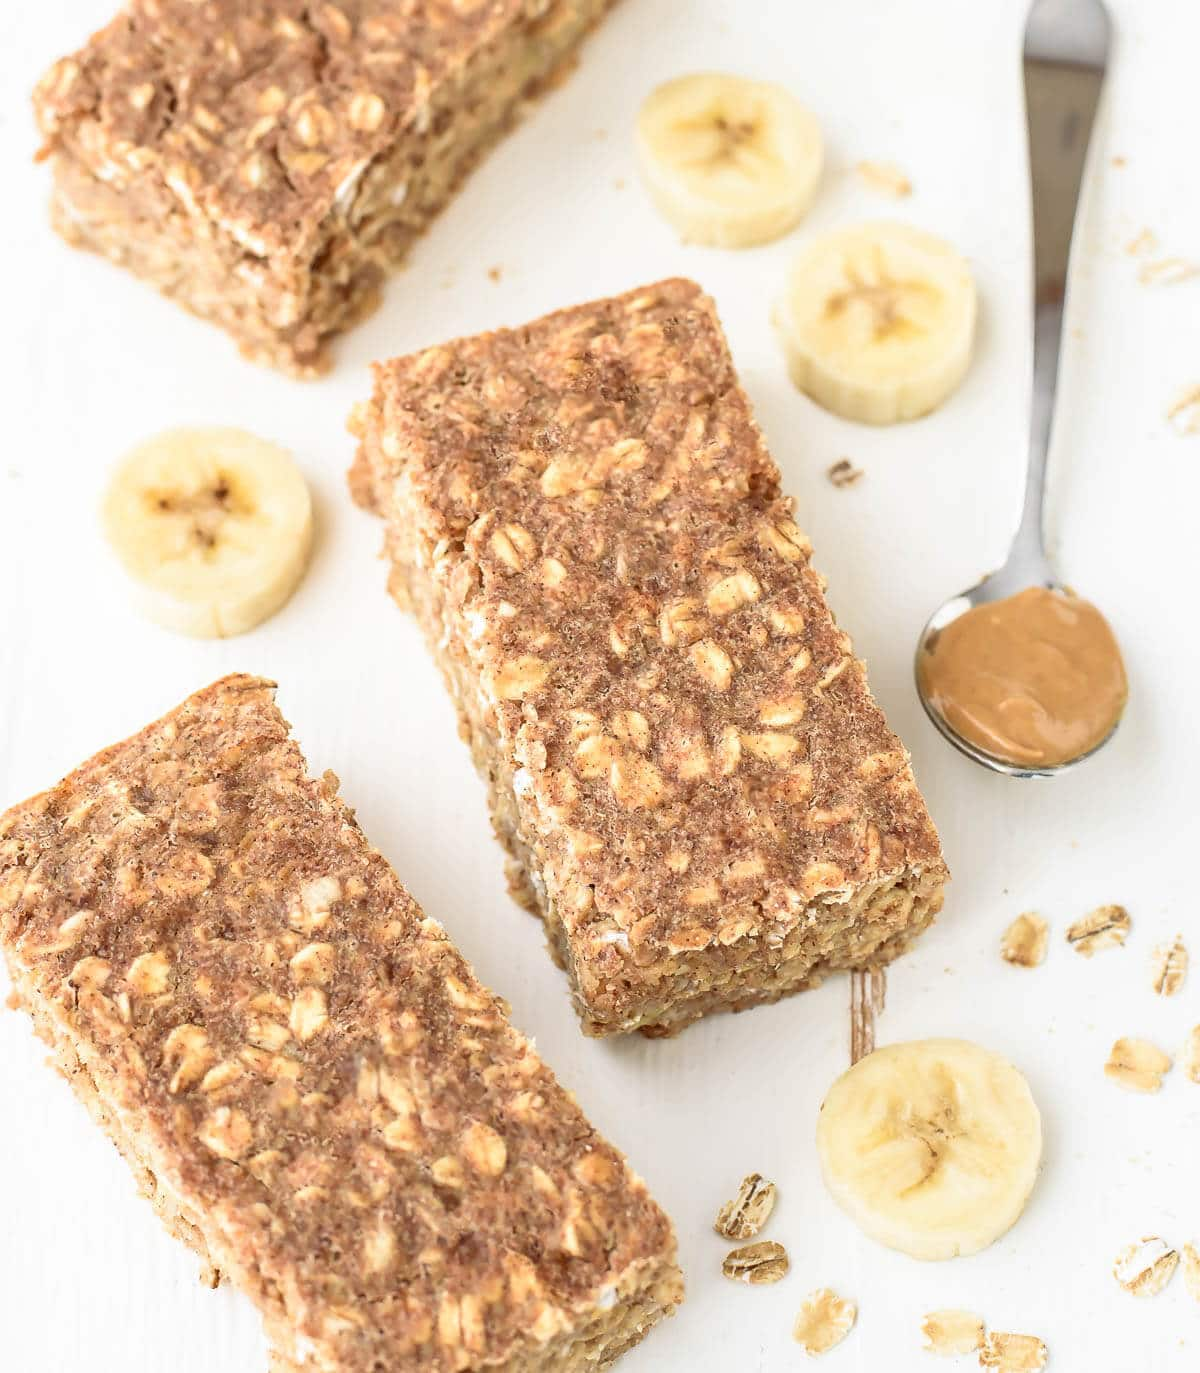 3 healthy Peanut Butter Banana Oatmeal Breakfast Bars surrounded by some of the ingredients needed to make them